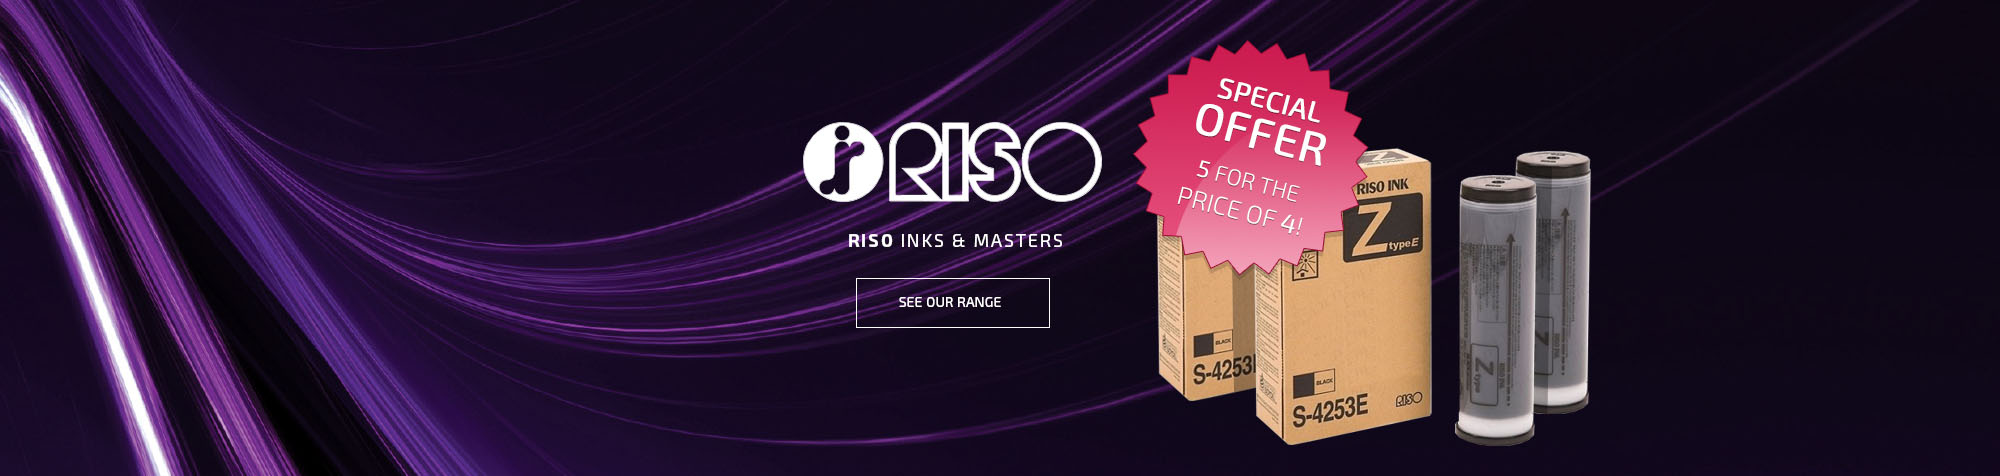 Riso Printers and Photocopiers